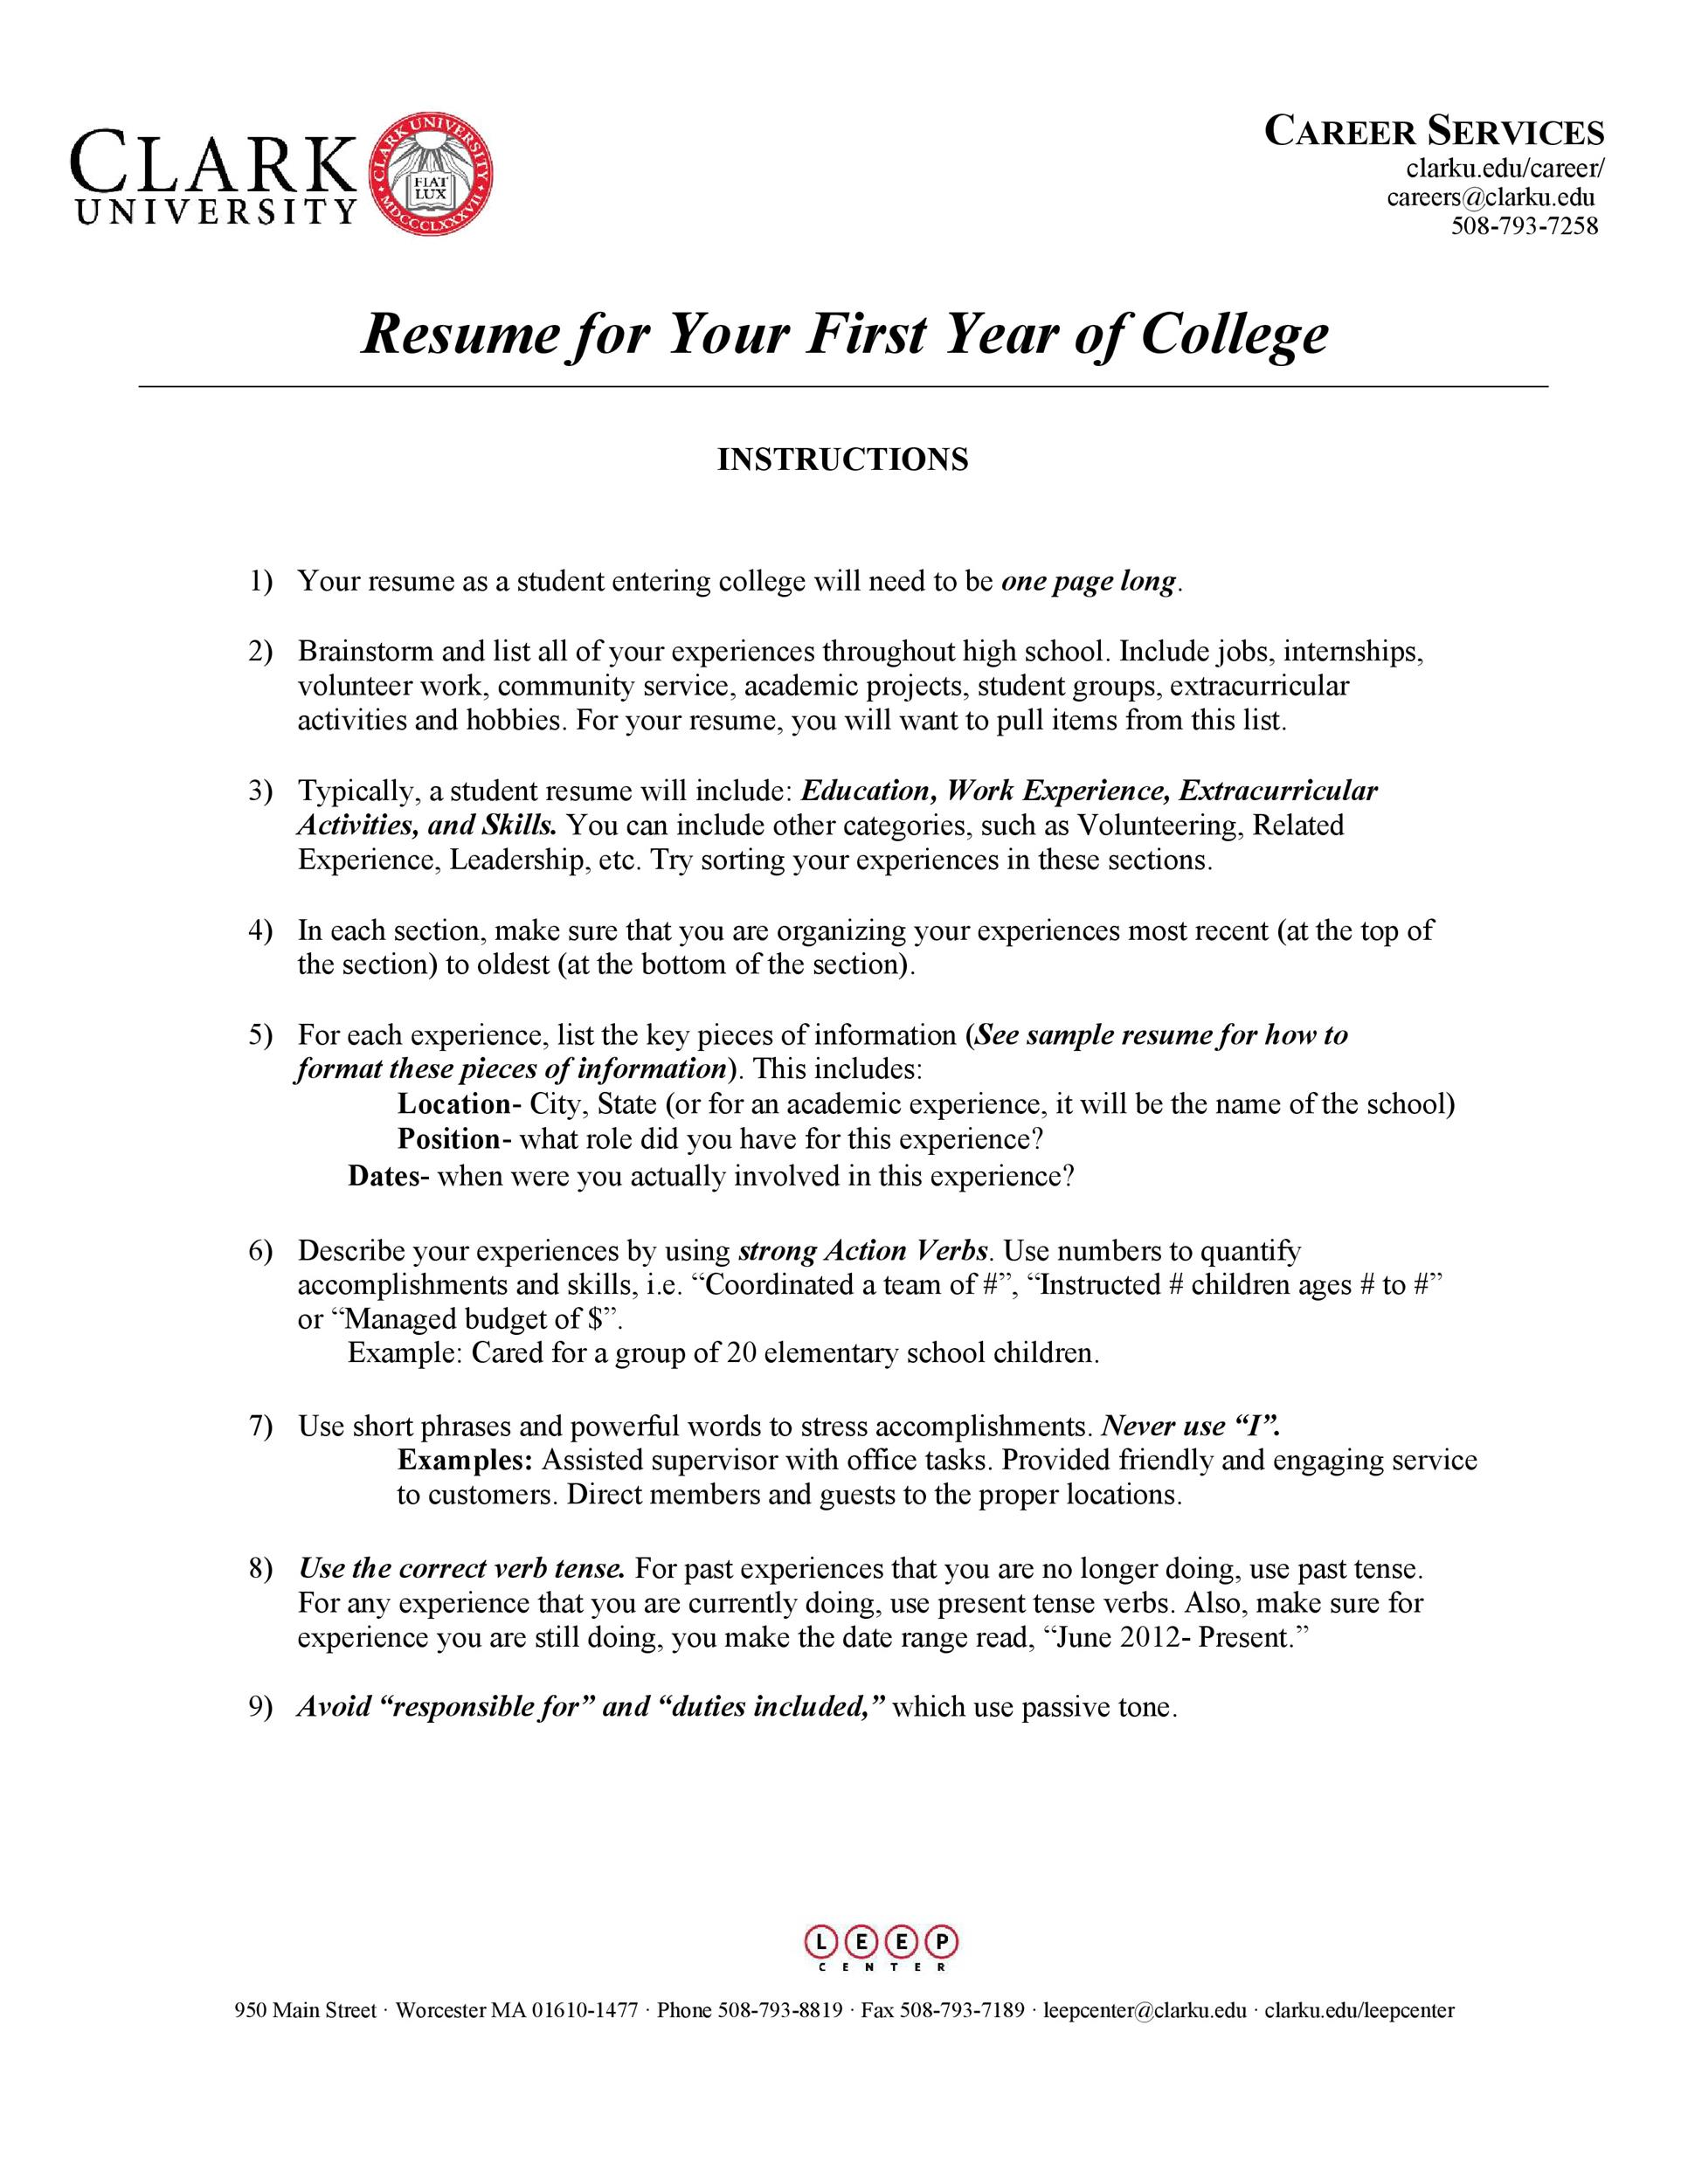 50 College Student Resume Templates (& Format) ᐅ Template Lab